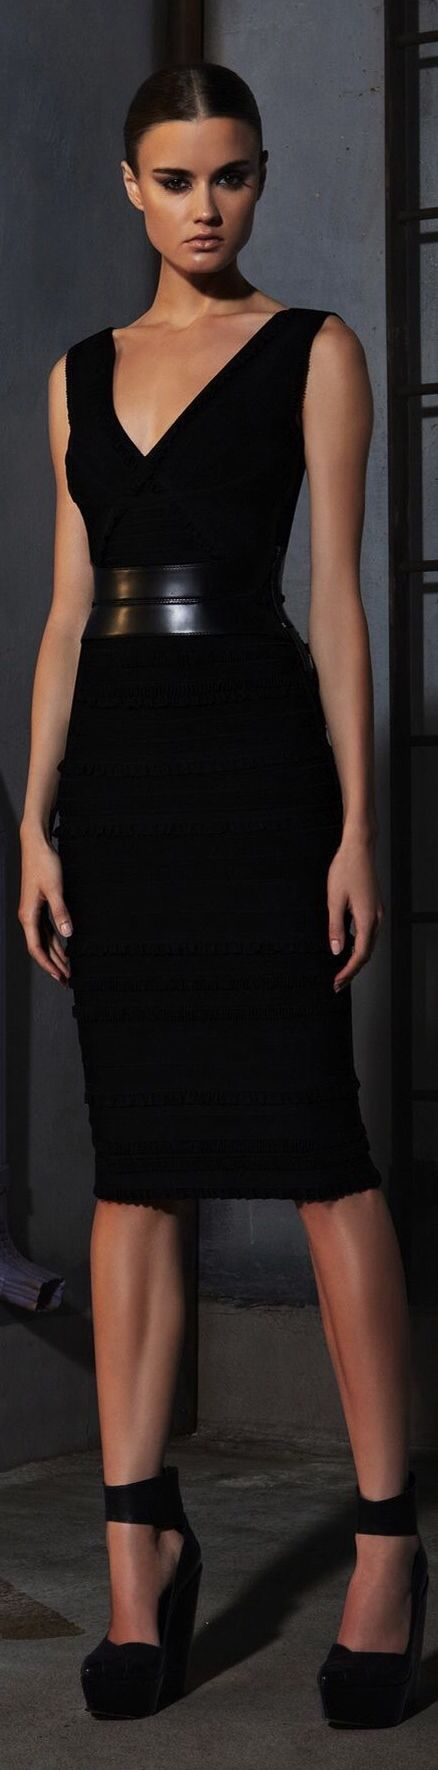 Herve Leger- I'd Love to see Stana in this one remember it was the Blue One at the Book Launch Party that made Paula tell Castle go sleep with her and get it outta your system